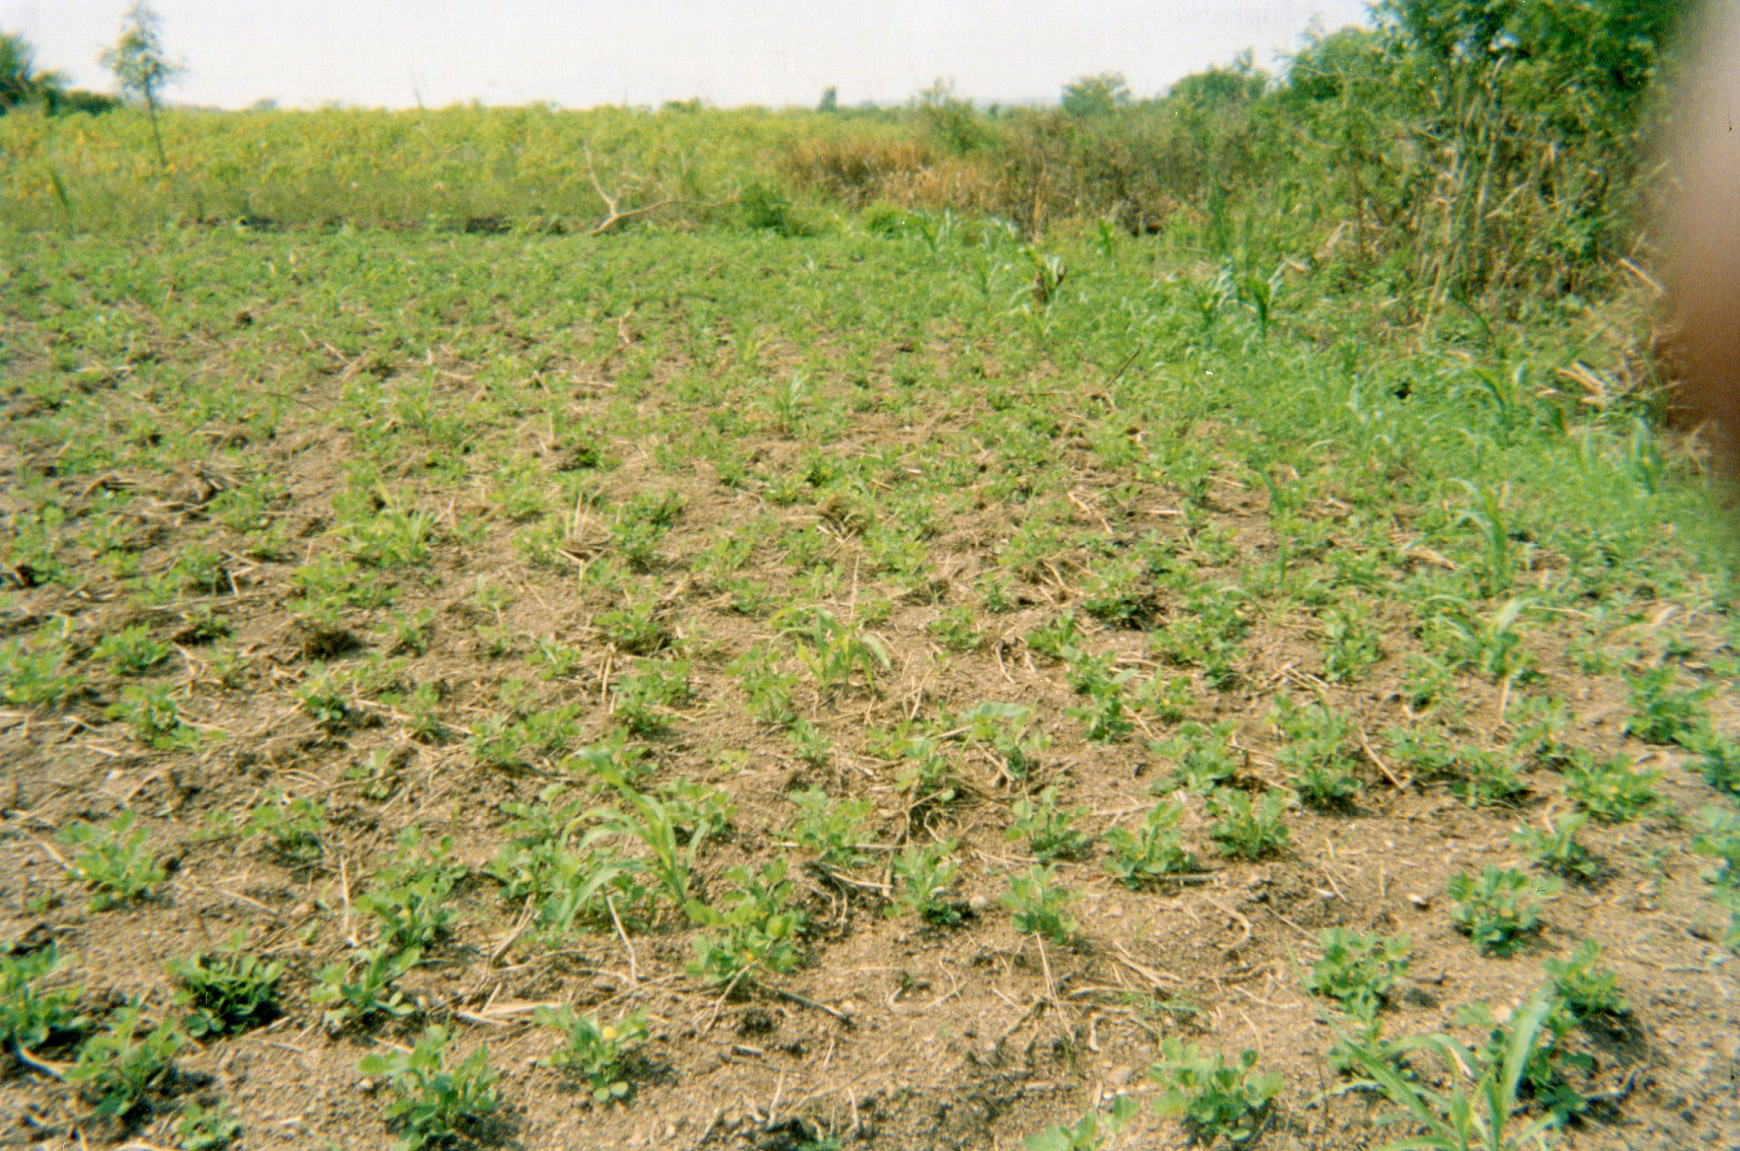 This picture shows my field of corn and peanuts. It can be considered my income generating activity.